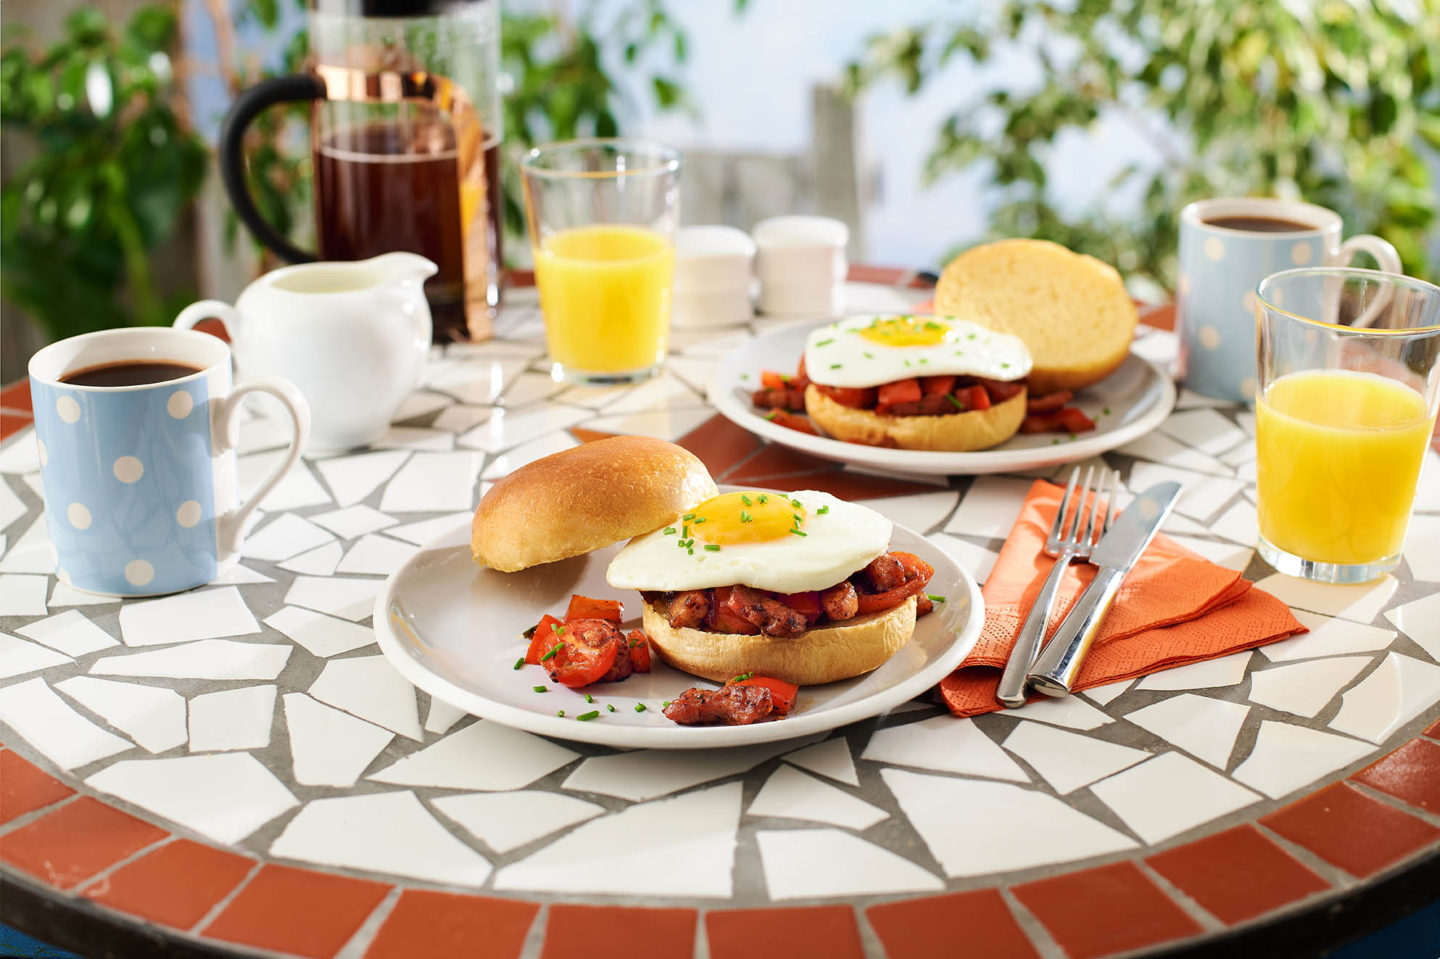 A table with plates and breakfast burgers in an outdoor setting